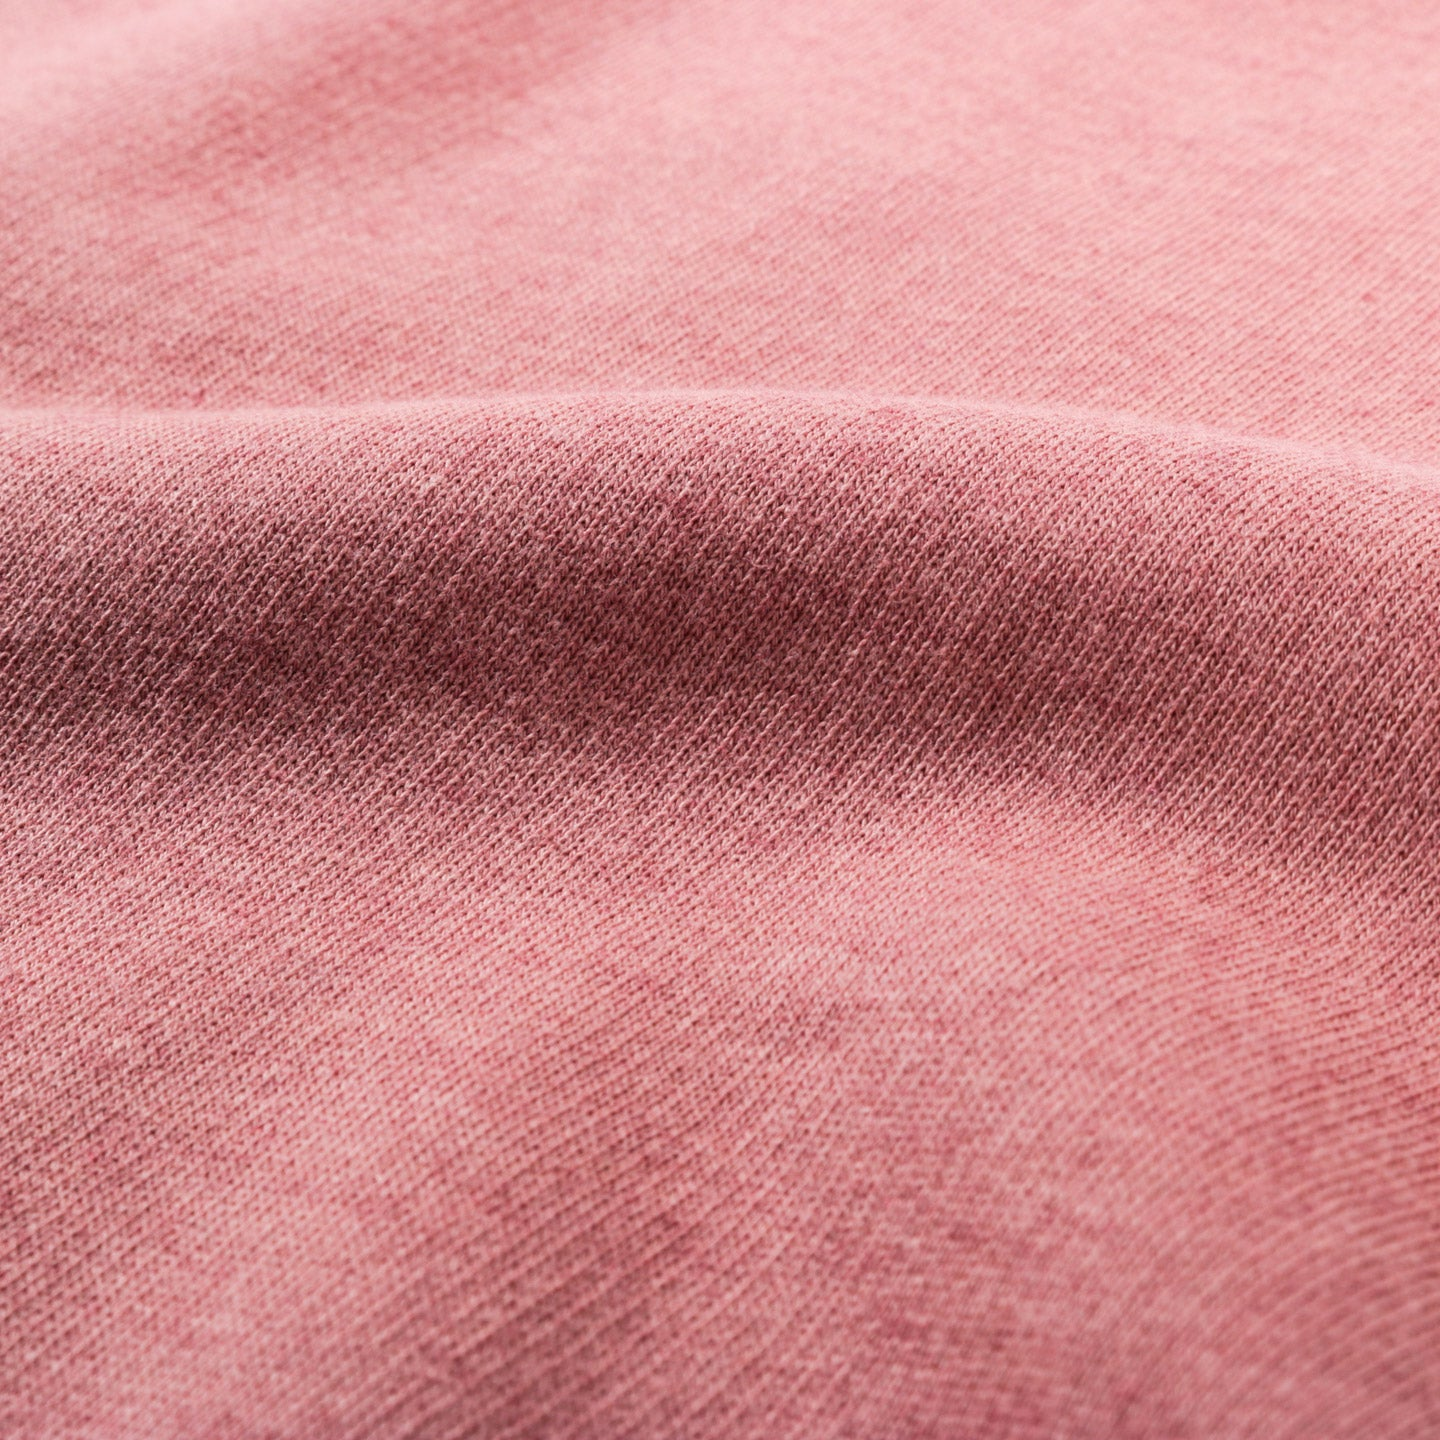 A.P.C. CAPITOL SWEATSHIRT FADED ROSE